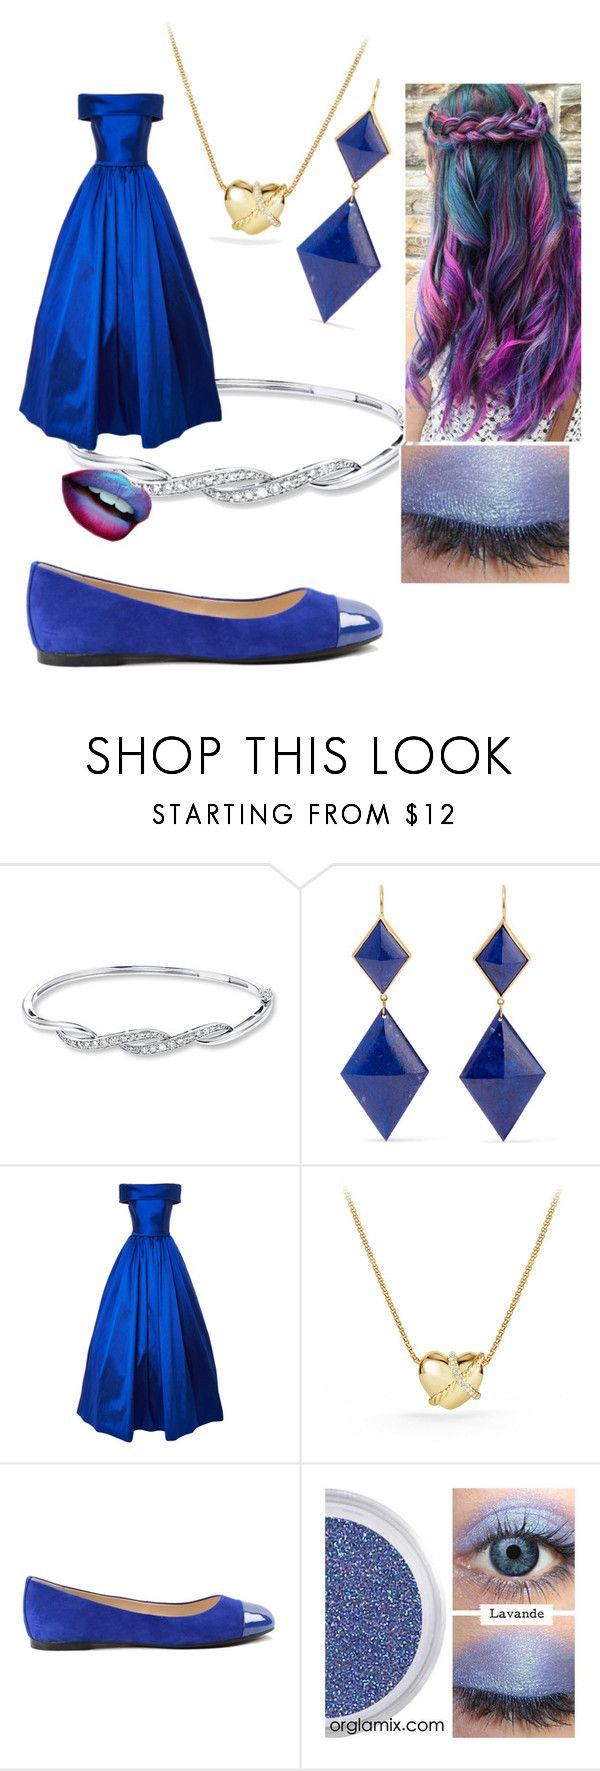 """blue date night must have"" by chianna-rodgers ❤ liked on Polyvore featuring Marie Hélène de Taillac, David Yurman and ANNA BAIGUERA"